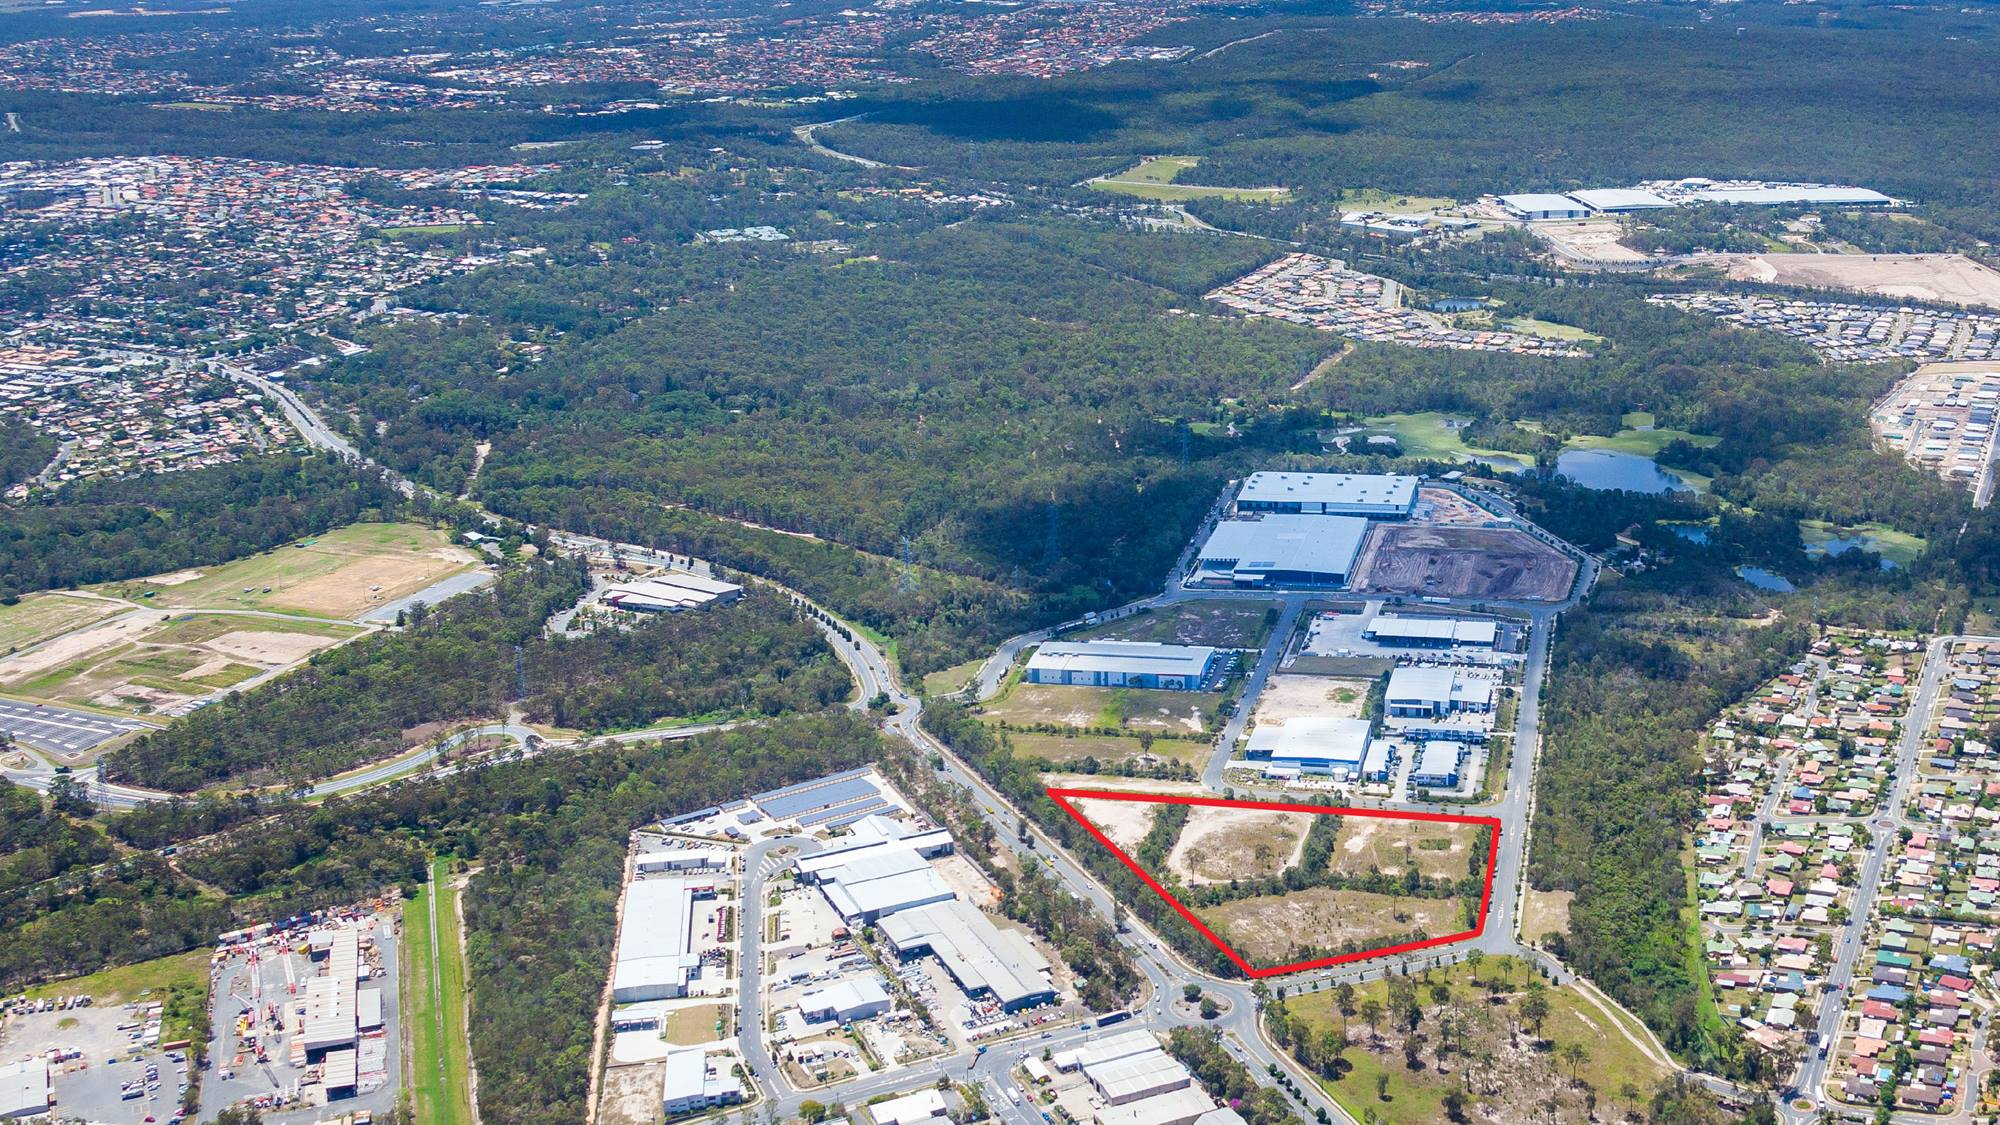 Frasers property acquires more land in brisbanes berrinba frasers property australia has expanded its landbank in brisbanes berrinba suburb and exchanged contracts to acquire a 44580 sqm site from logan city malvernweather Image collections